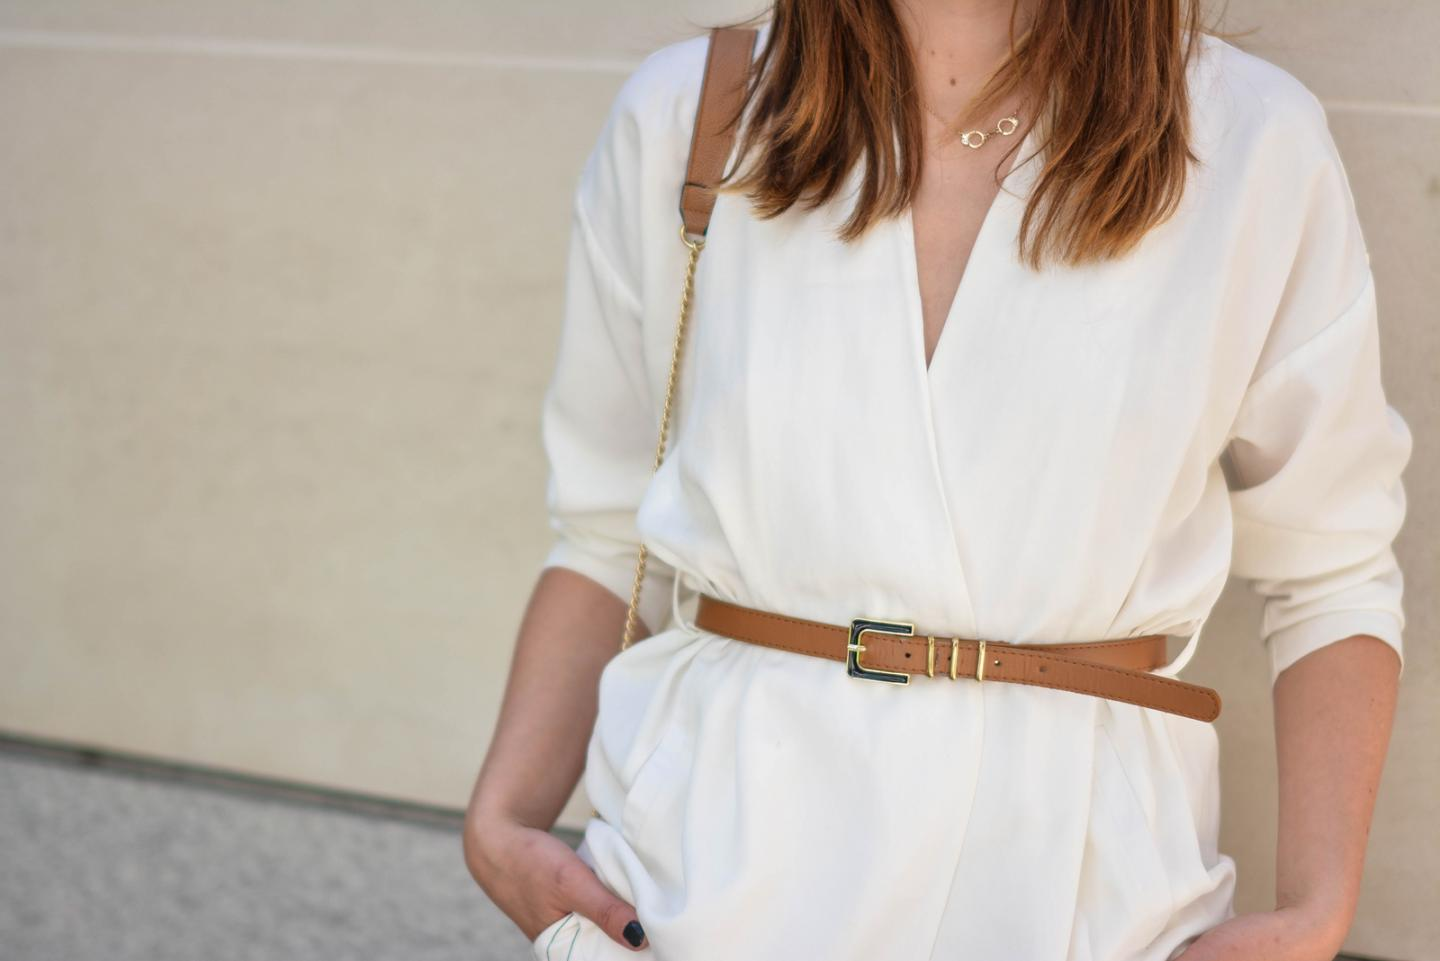 EJSTYLE - Emma Hill wearing Gestuz white wrap jacket, tan skinny waist belt, gold handcuff necklace